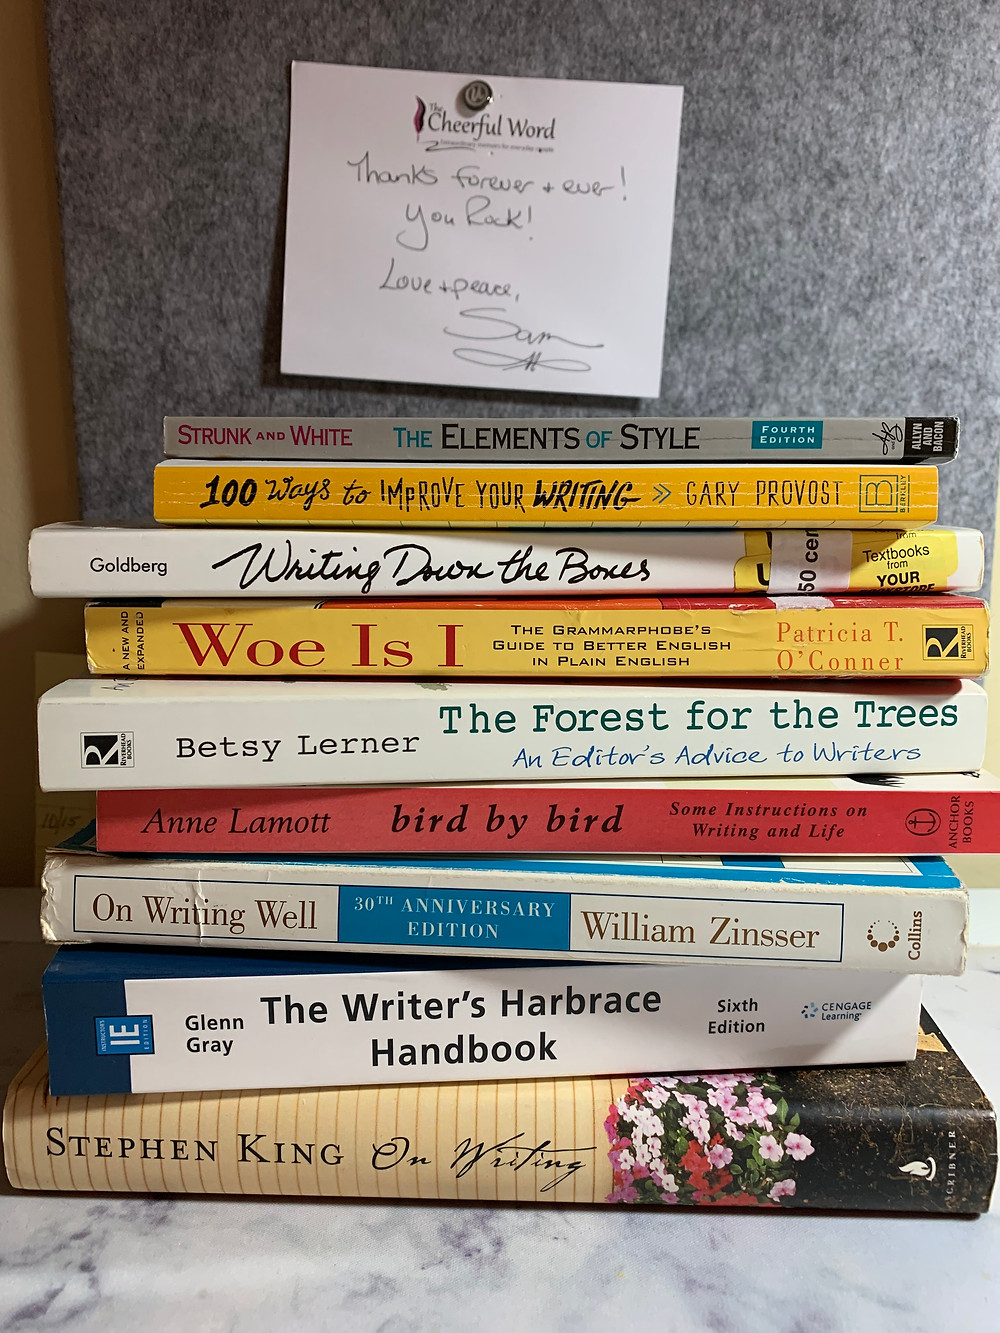 A stack of the books discussed in this article